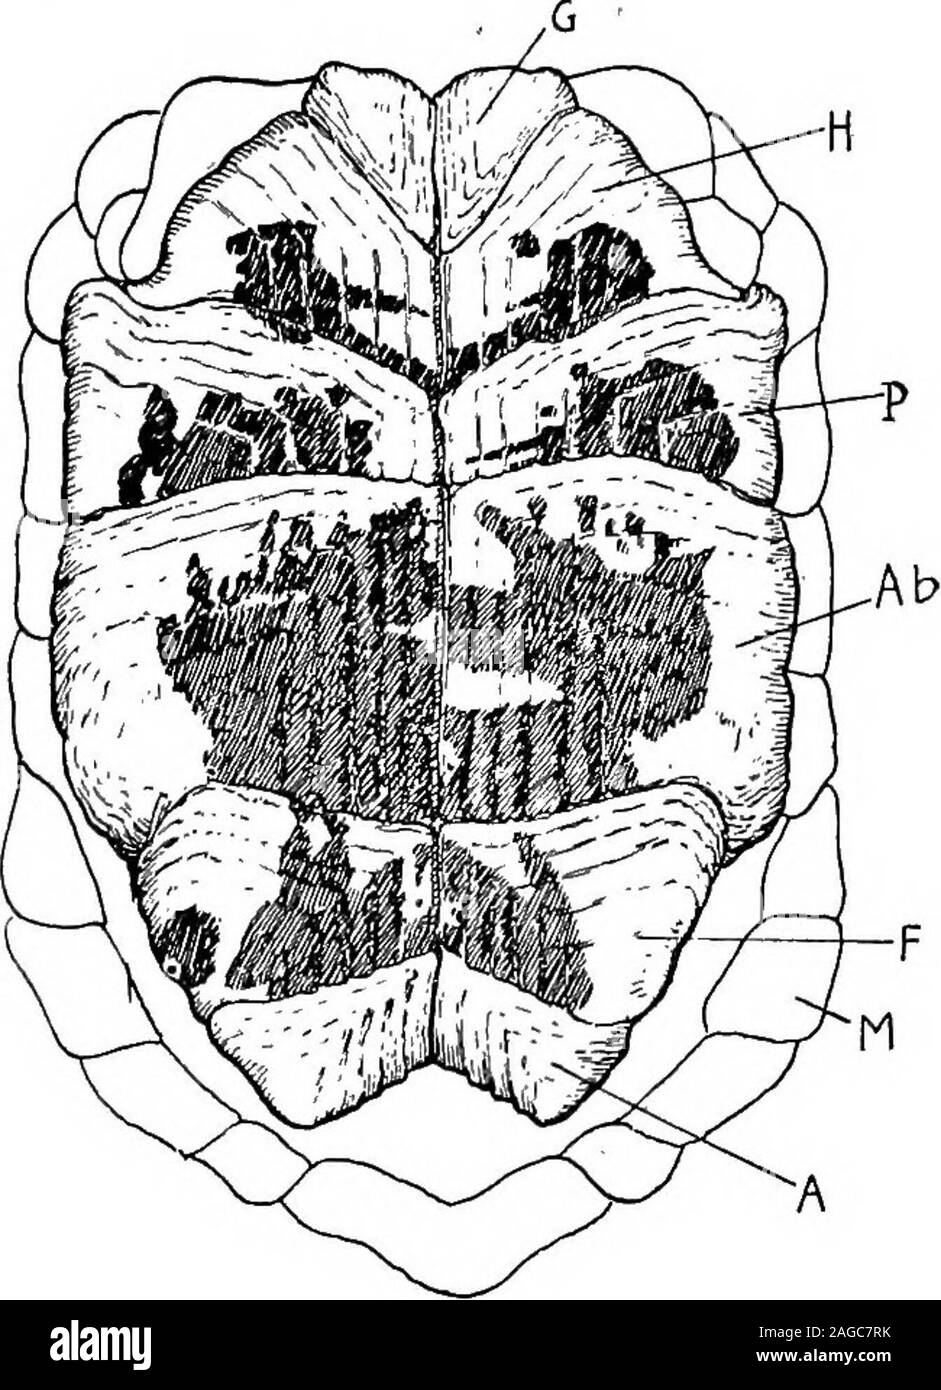 . Outlines of zoology. lastron; XIPHL^ xiphiplastron. The heart is three-chambered, but an incomplete septum divides theventricle into a right portion, from which the pulmonary arteries andthe left aortic arch arise, and a left portion, from which the right aorticarch issues. From the right aortic arch, which contains more pureblood than the left, the carotid and subclavian arteries are given off.The left aortic arch gites off the cceliac artery before it unites with theright. The lungs are attached to the, dorsal wall of the thorax, and haveonly a ventral investment of peritoneum; each is div Stock Photo